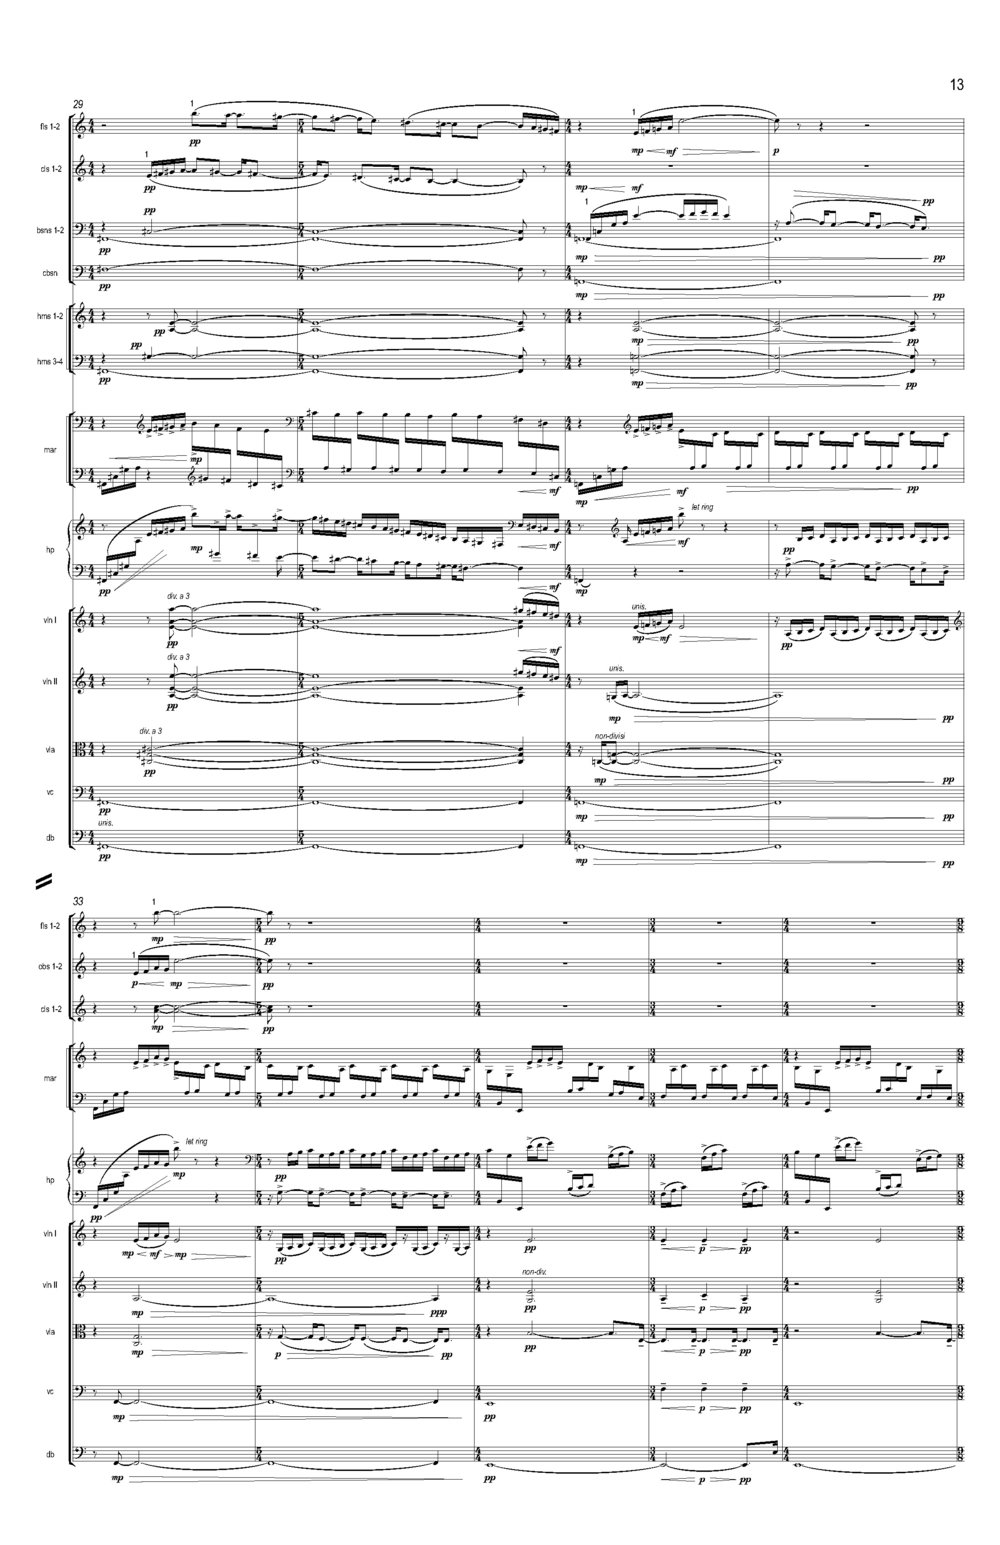 Ciach_Collective Uncommon REVISED_Full Score (Feb 2017)_Seite_19.jpg